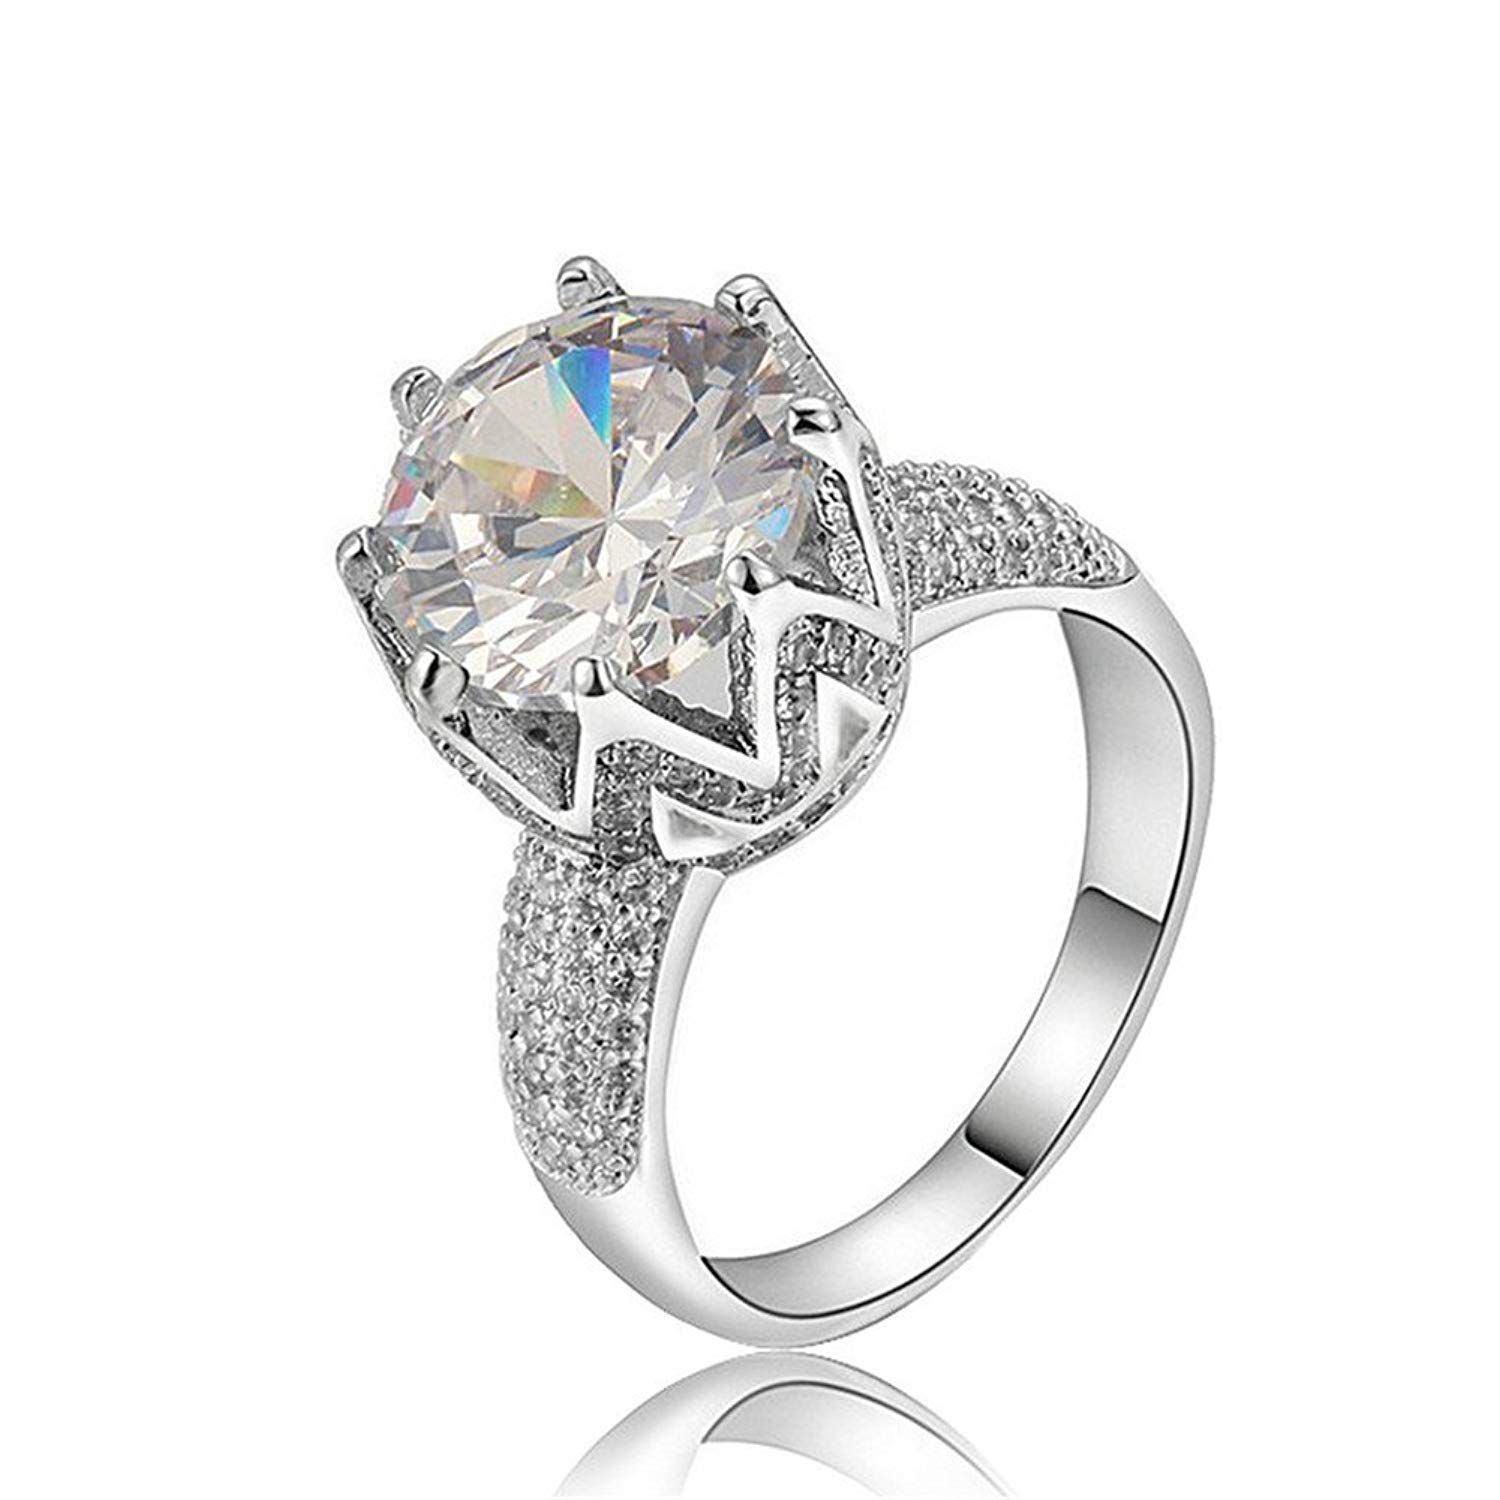 Tenfit Jewelry Womens Luxury 18K White Gold Love Solitaire